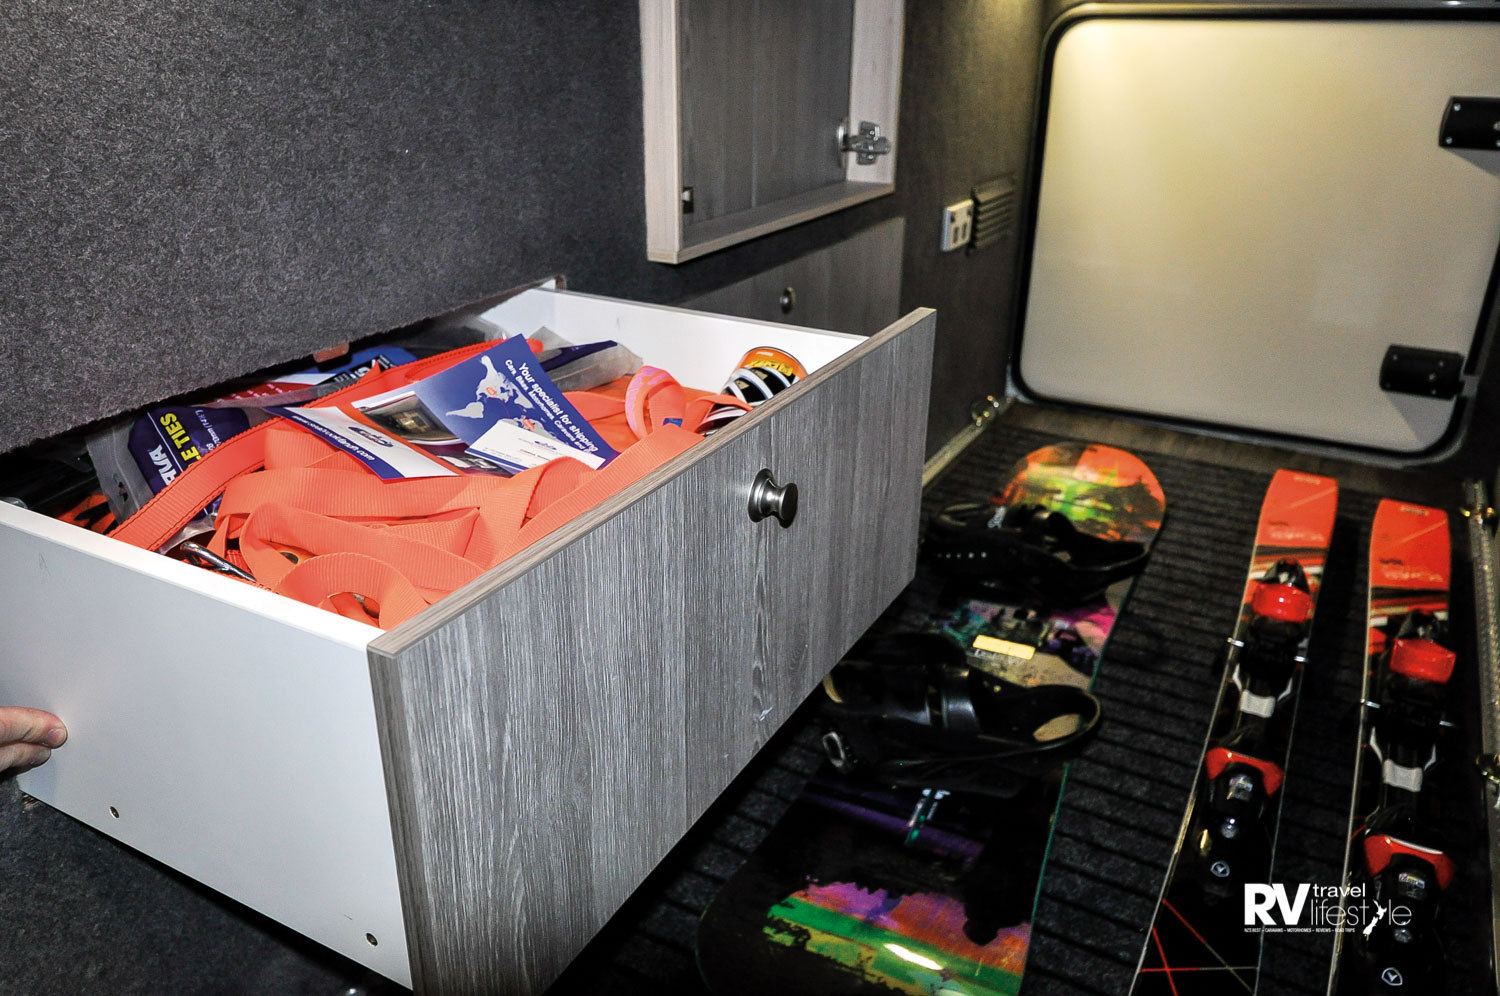 'Garage' drawers are innovative and welcome